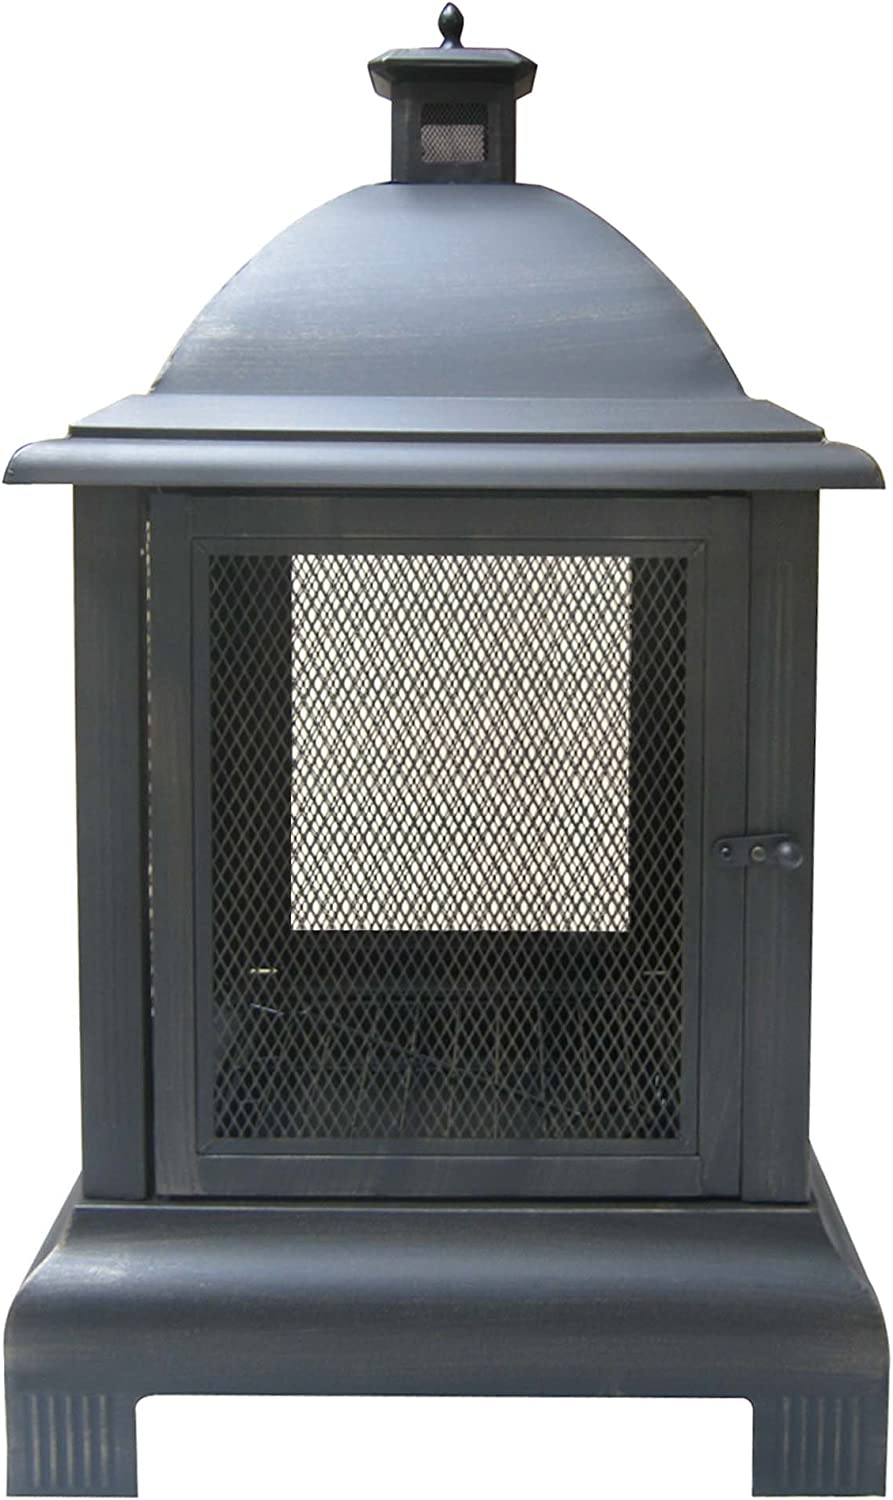 DeckMate 30375 Franklin Outdoor Fireplace